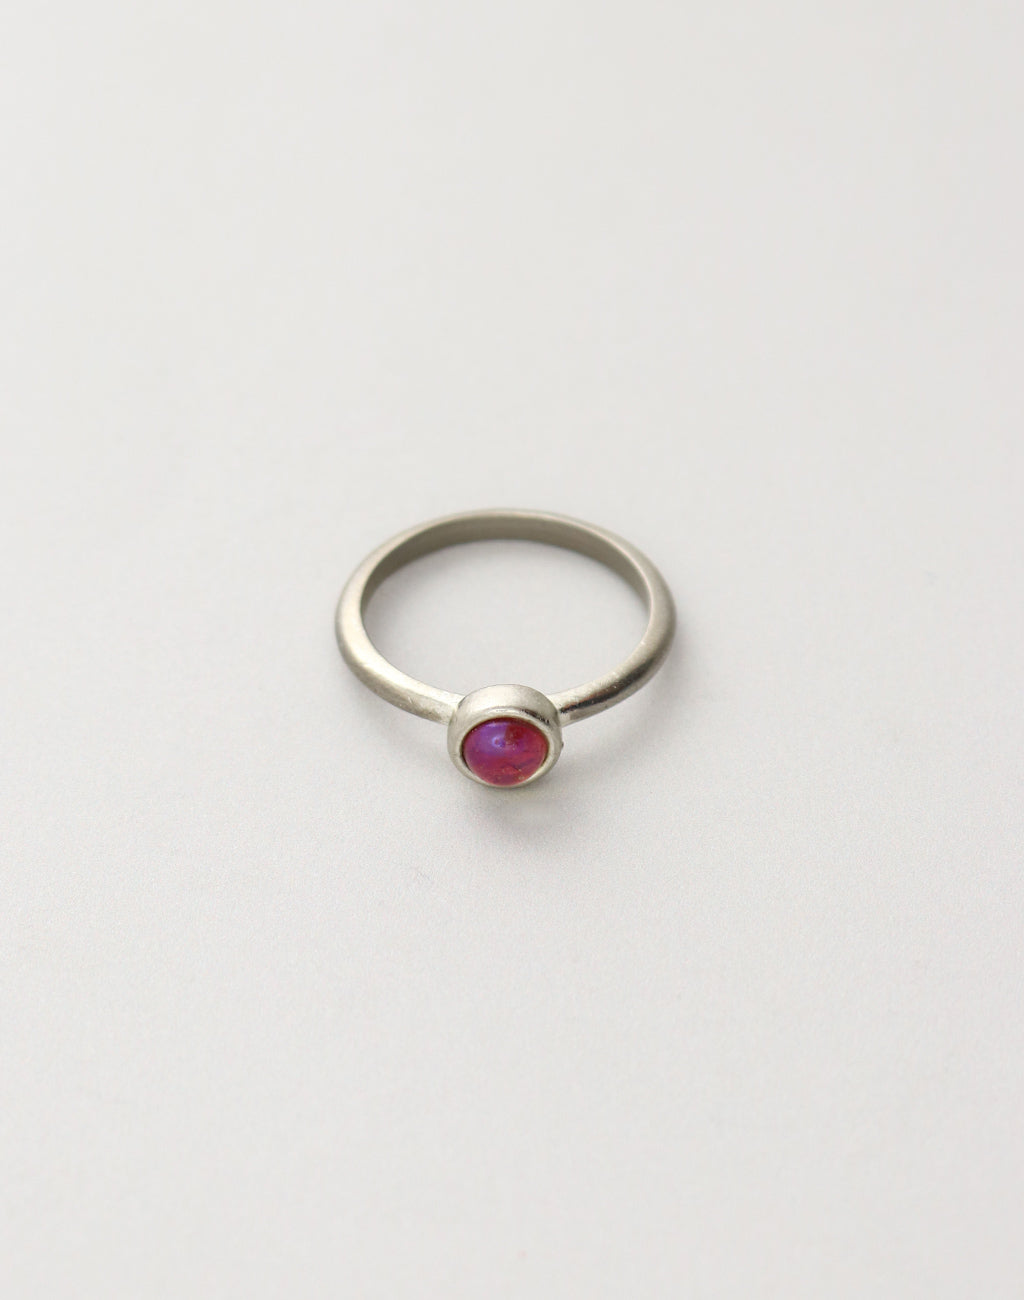 Fire opal Ring, size 8, (1pc)